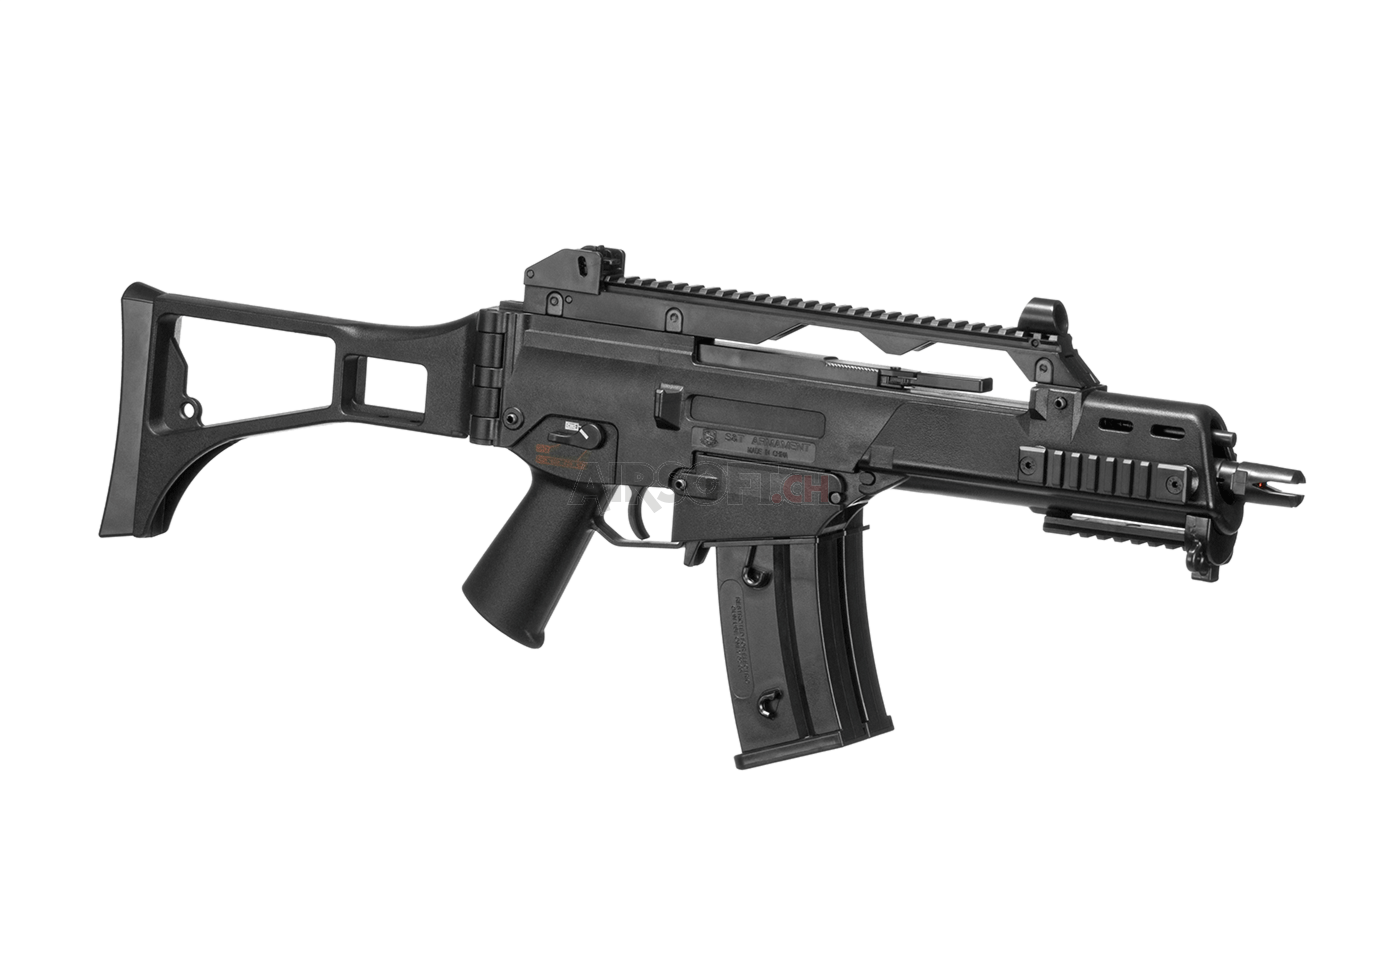 g316c sportline black s t aeg airsoft aeg rifles online shop. Black Bedroom Furniture Sets. Home Design Ideas